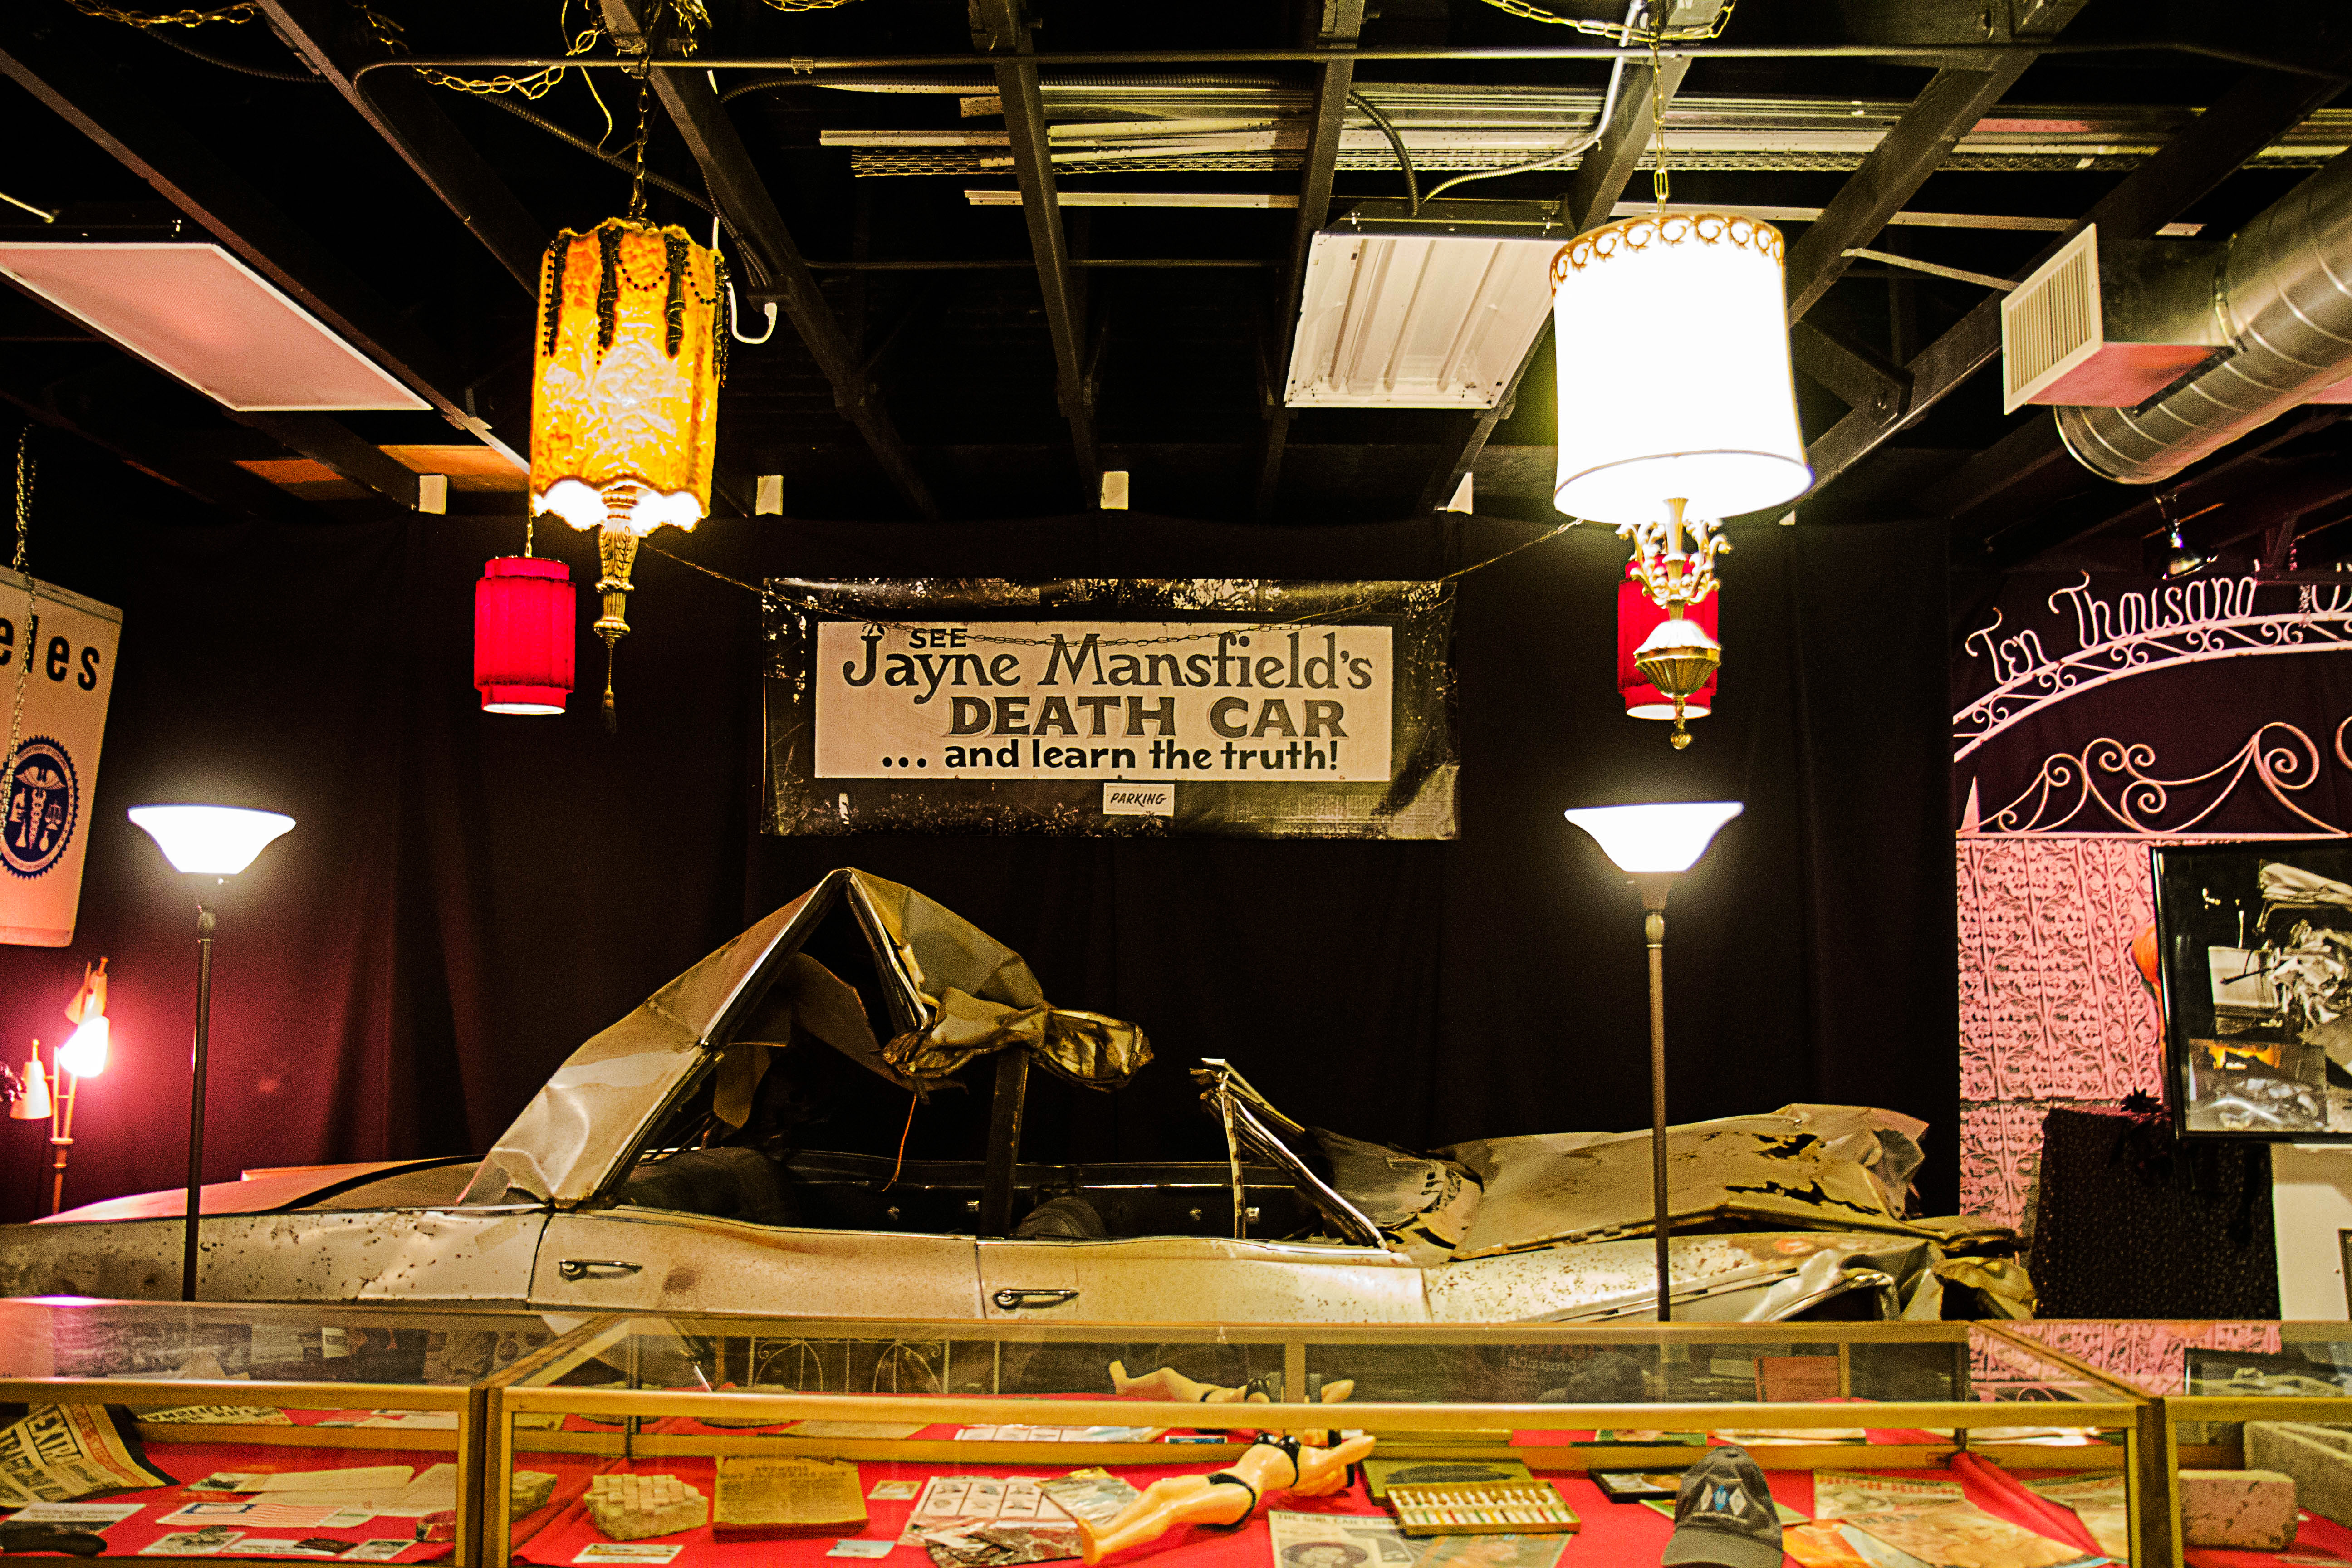 Car Museum Los Angeles >> Dearly Departed Tours and Artifact Museum (Erica Lancaster) | The LA Beat